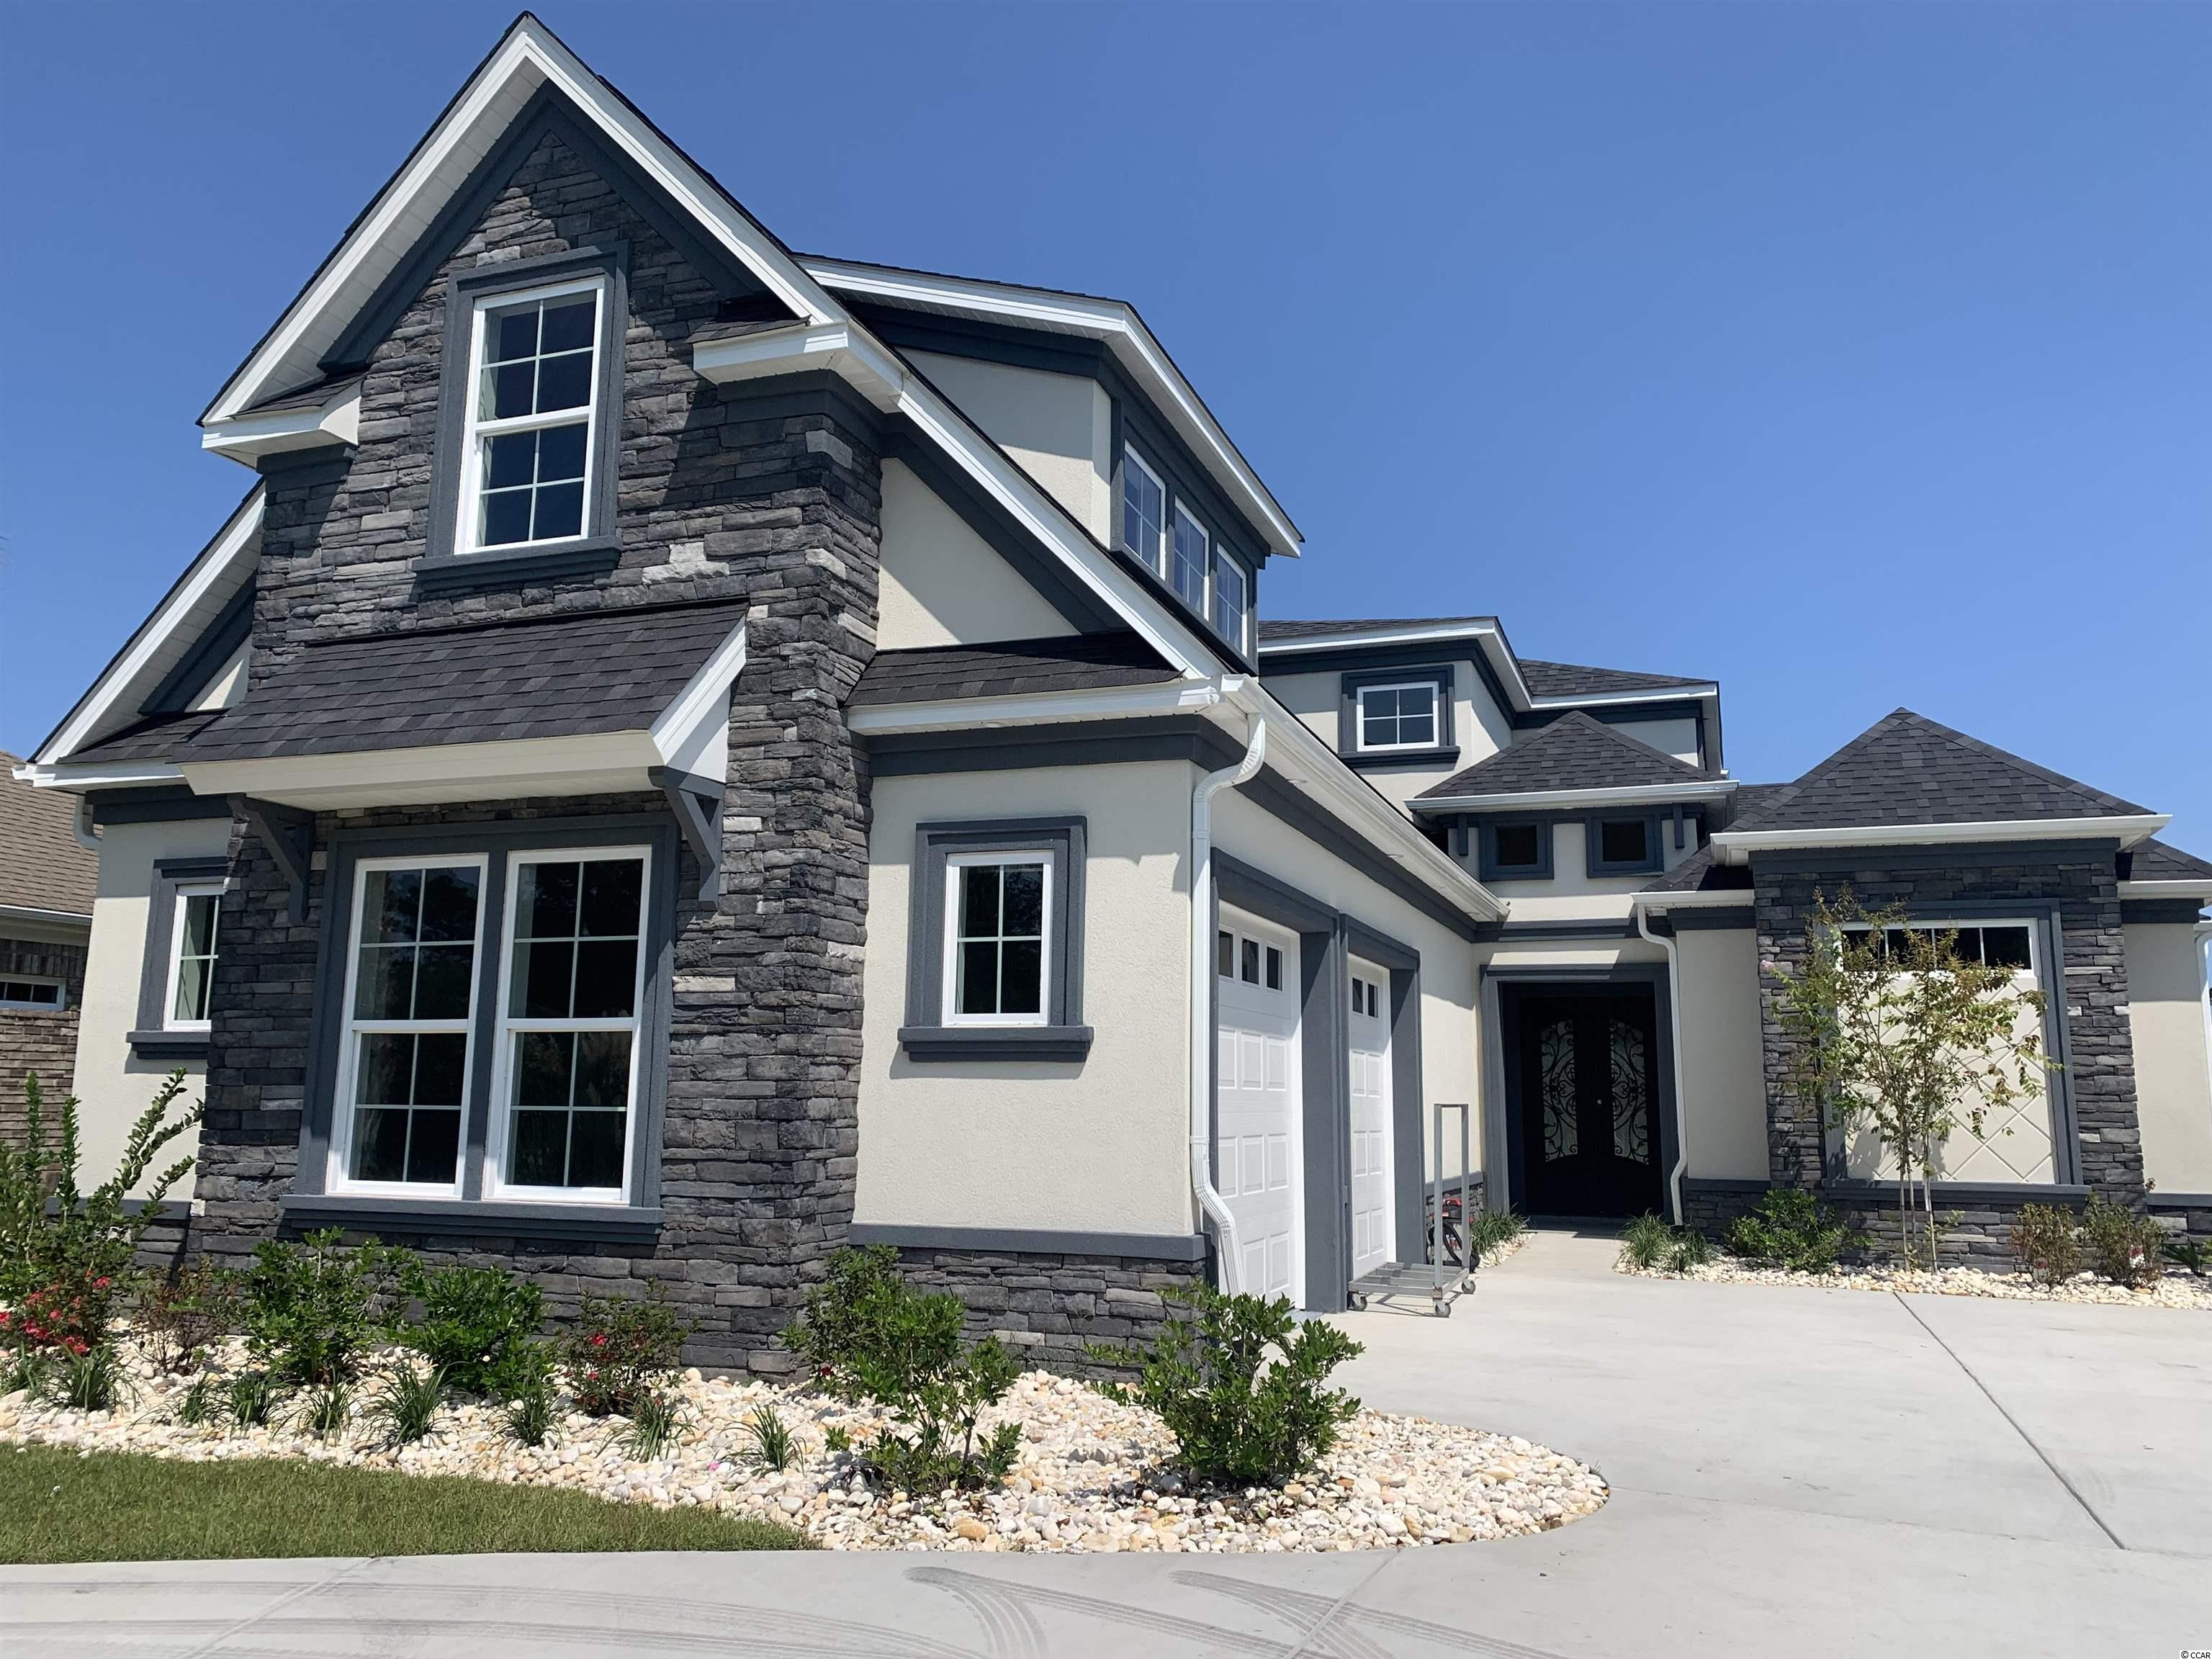 This beautiful new construction home is under construction and will be ready for a lucky buyer in July 2021! Located in the highly sought after Carolina Waterway Plantation that is a gated intra coastal waterway community with private boat storage and boat launch access. If you are looking for a 100% custom home with quality upgrades and finishes this is it. This home will be loaded with all of the upgrades would expect in this price range including  LVP flooring throughout upgraded countertops, soft close all wood cabinets, all showers are tile including a large shower and tub in the master bathroom, custom wood shelving in your oversized master walk in closet, large tray ceilings, appliances credit will be given, crown molding and upgraded lighting package. Carolina Waterway is located conveniently near Hwy 501 and Hwy 31 for quick easy access to all of Myrtle Beach and surrounding areas have to offer. Buyers if purchase in time will be given choices for certain finishes. Book your showing today as you will not be disappointed!